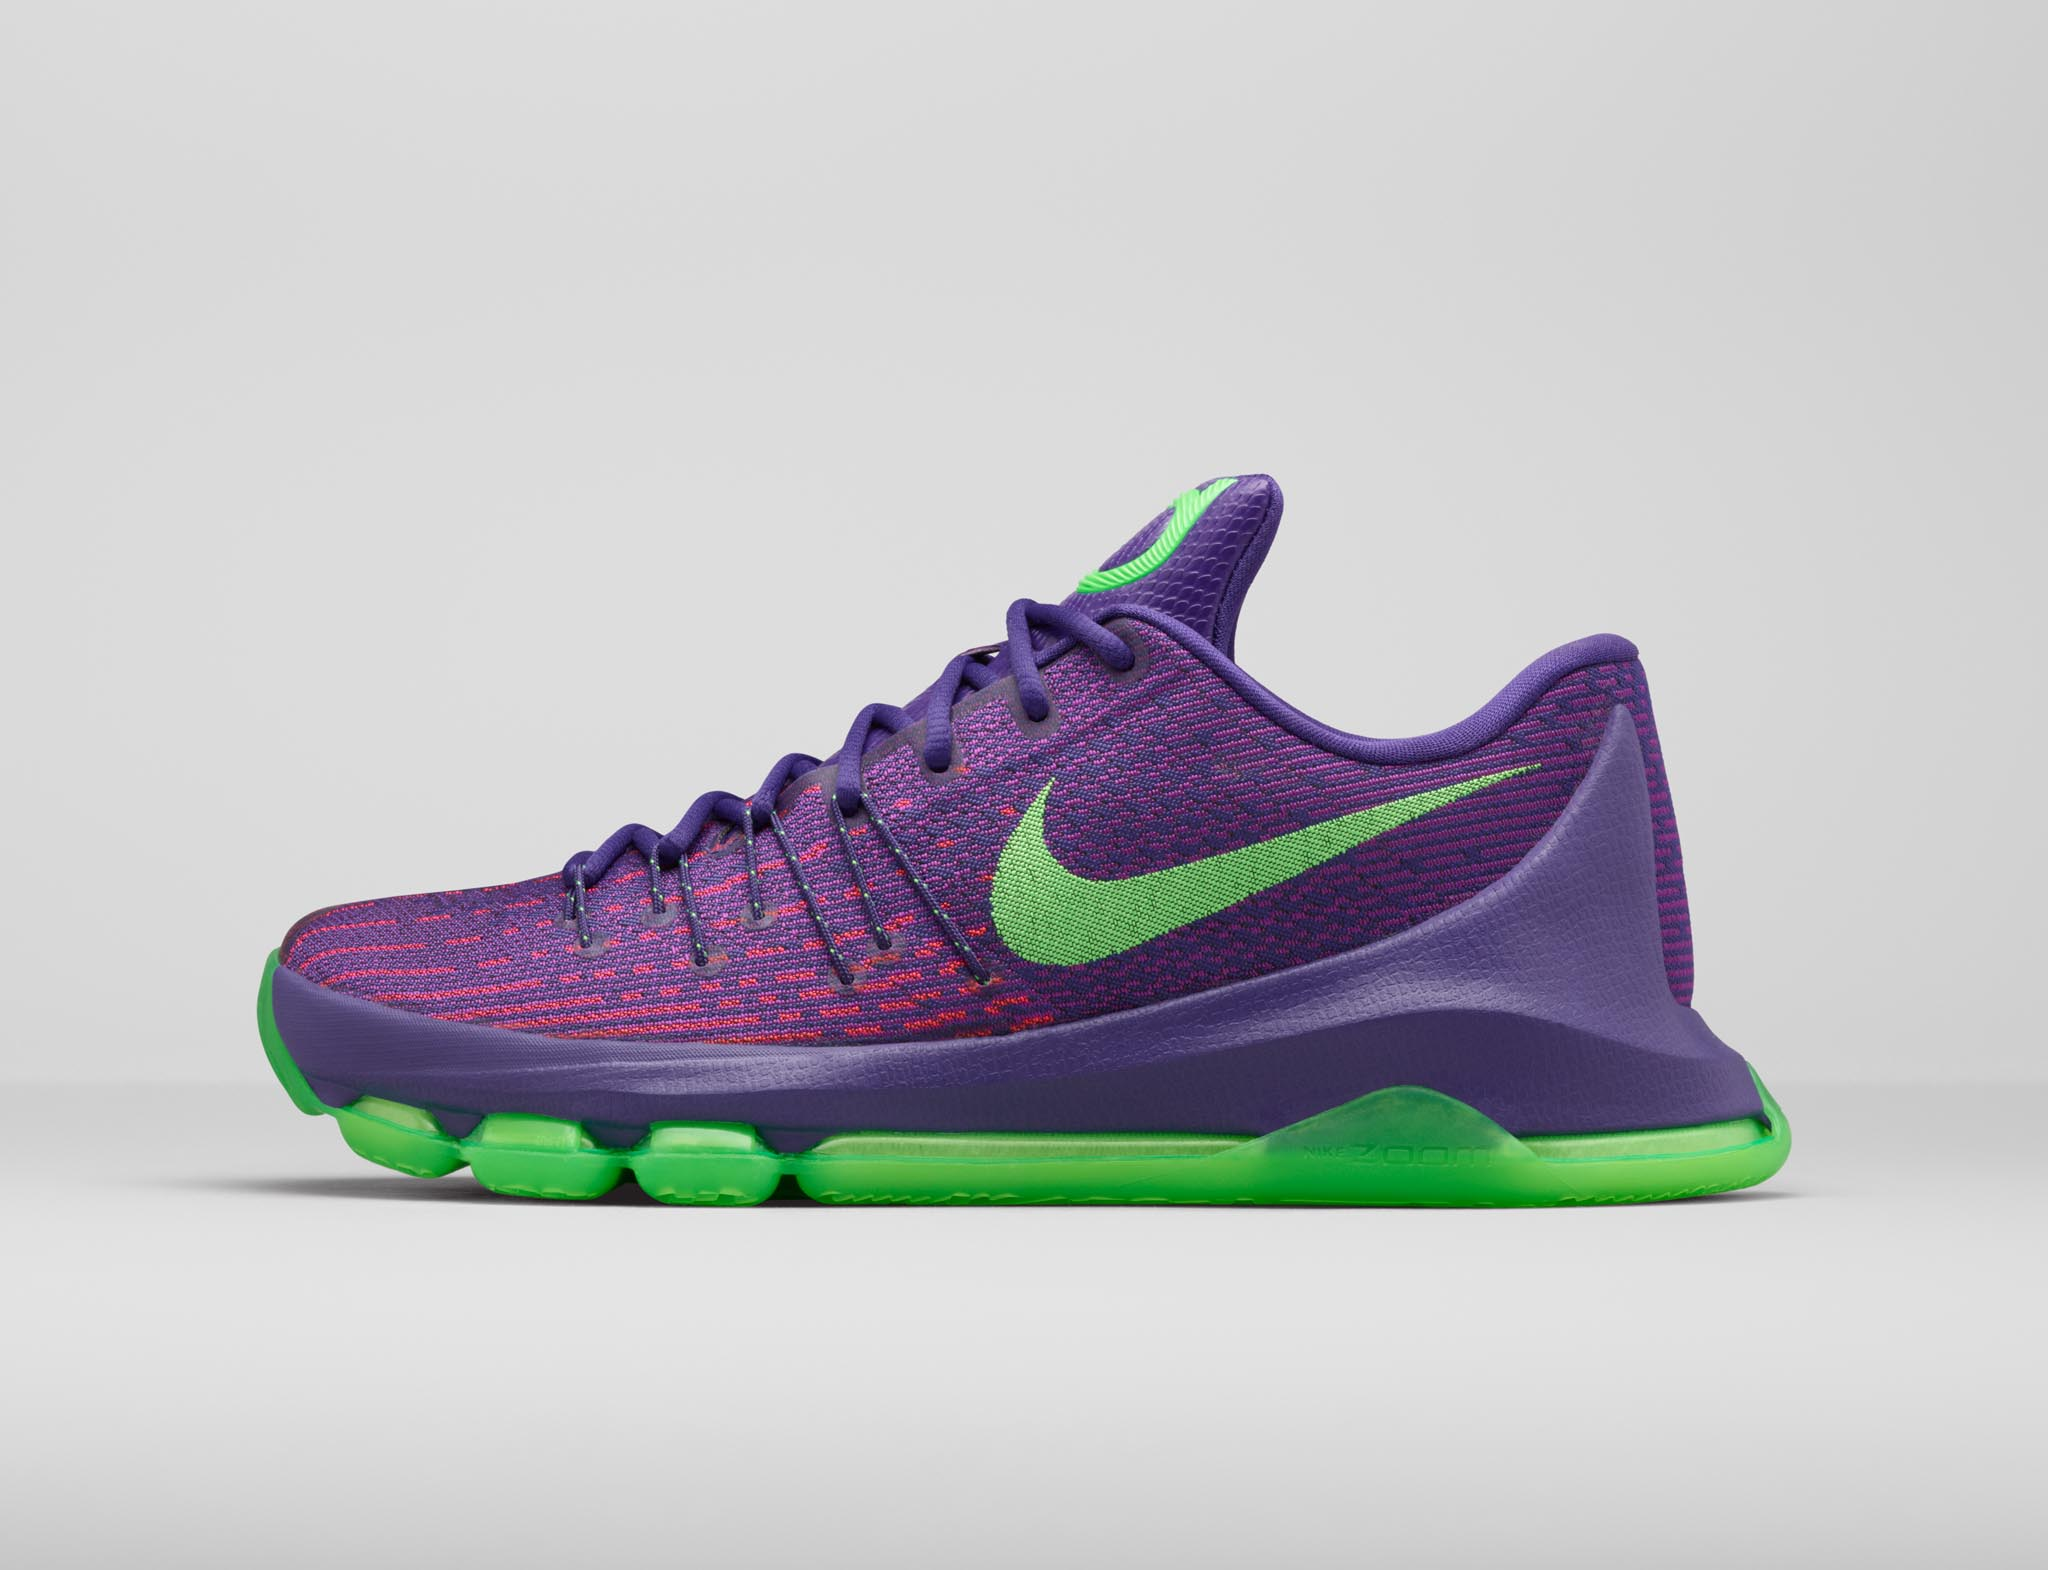 4417da69c6f2 ... italy nerf new basketball thirstzero great site for all sneakers half  off 2ffab 3dbed lo hi